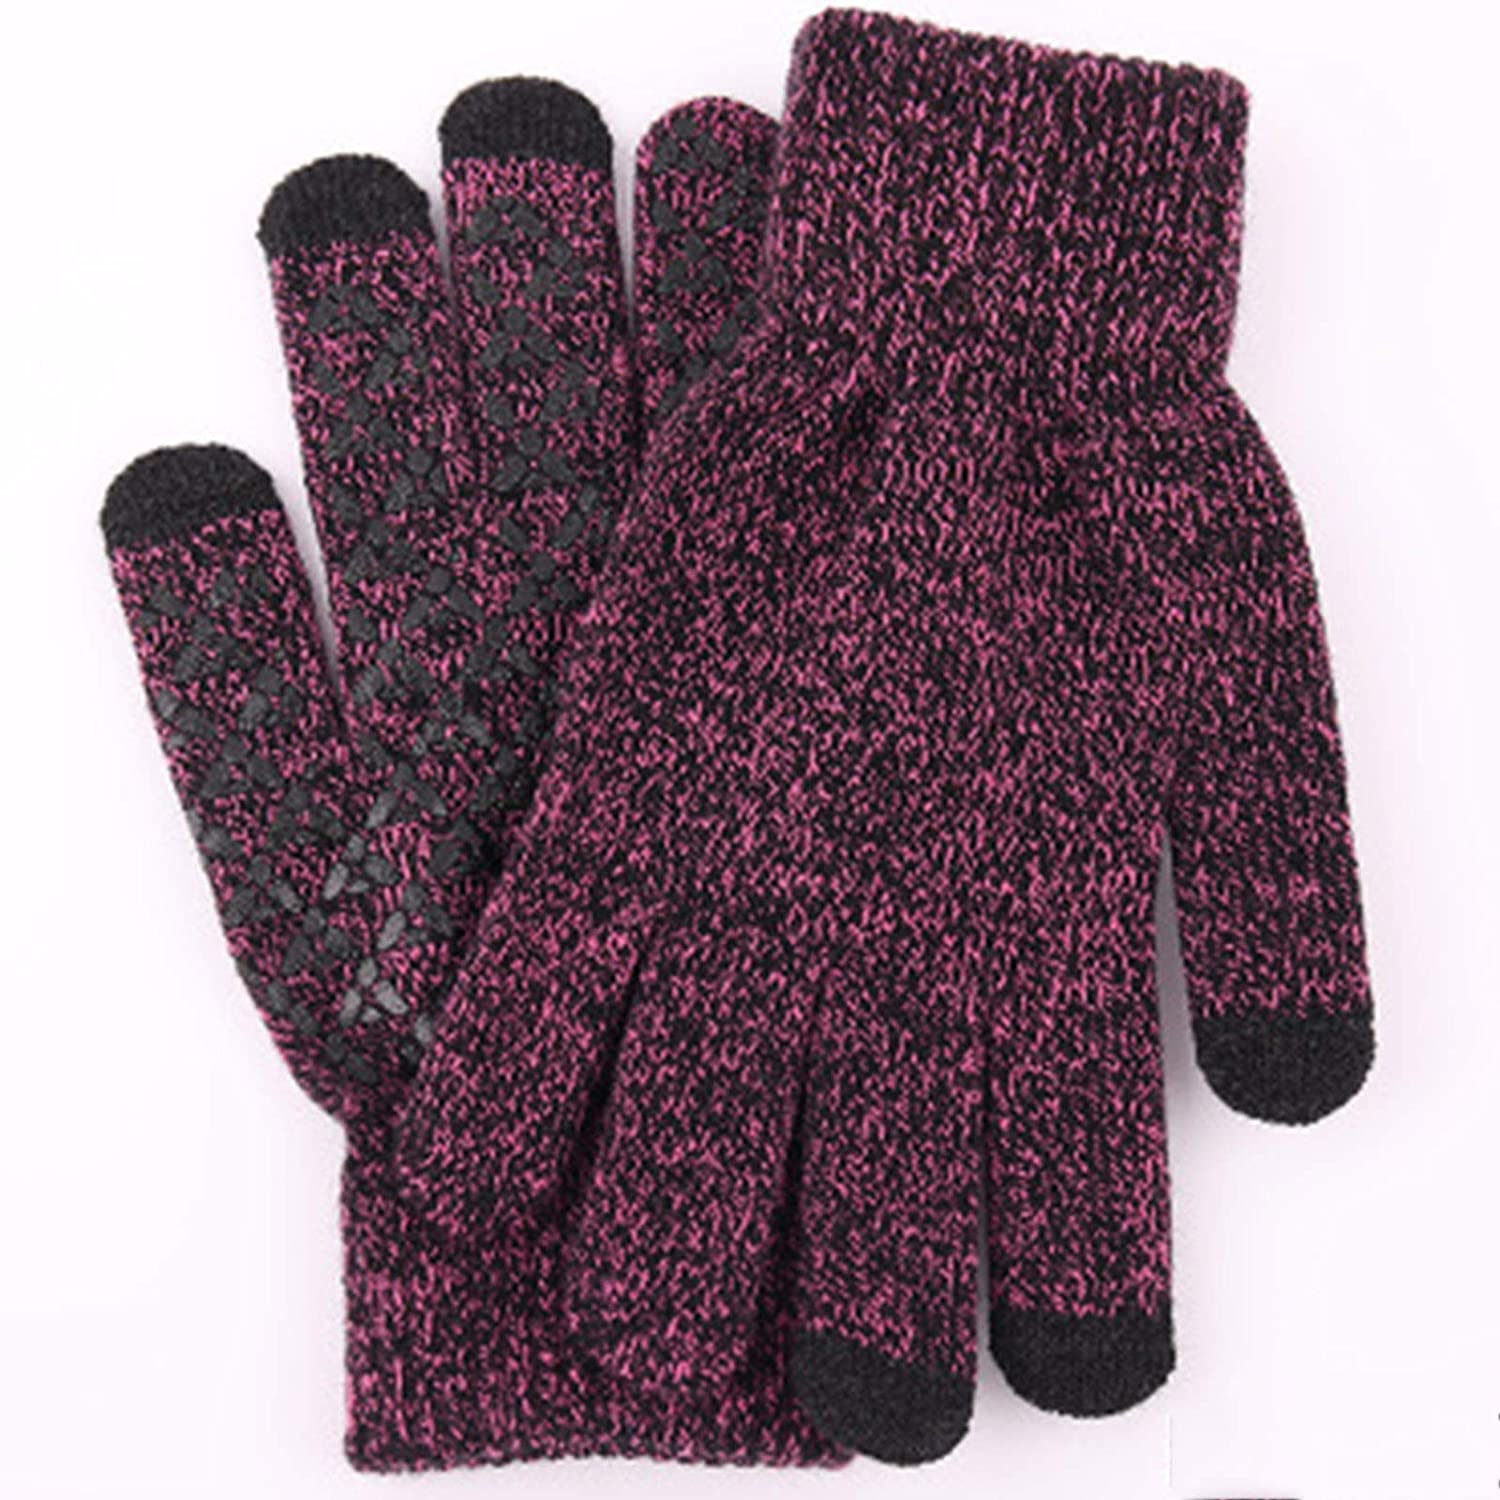 YUMGT Winter Non-Slip Knitted Warm Gloves Men's Outdoor Cycling Sports Gloves Touch Screen Gloves